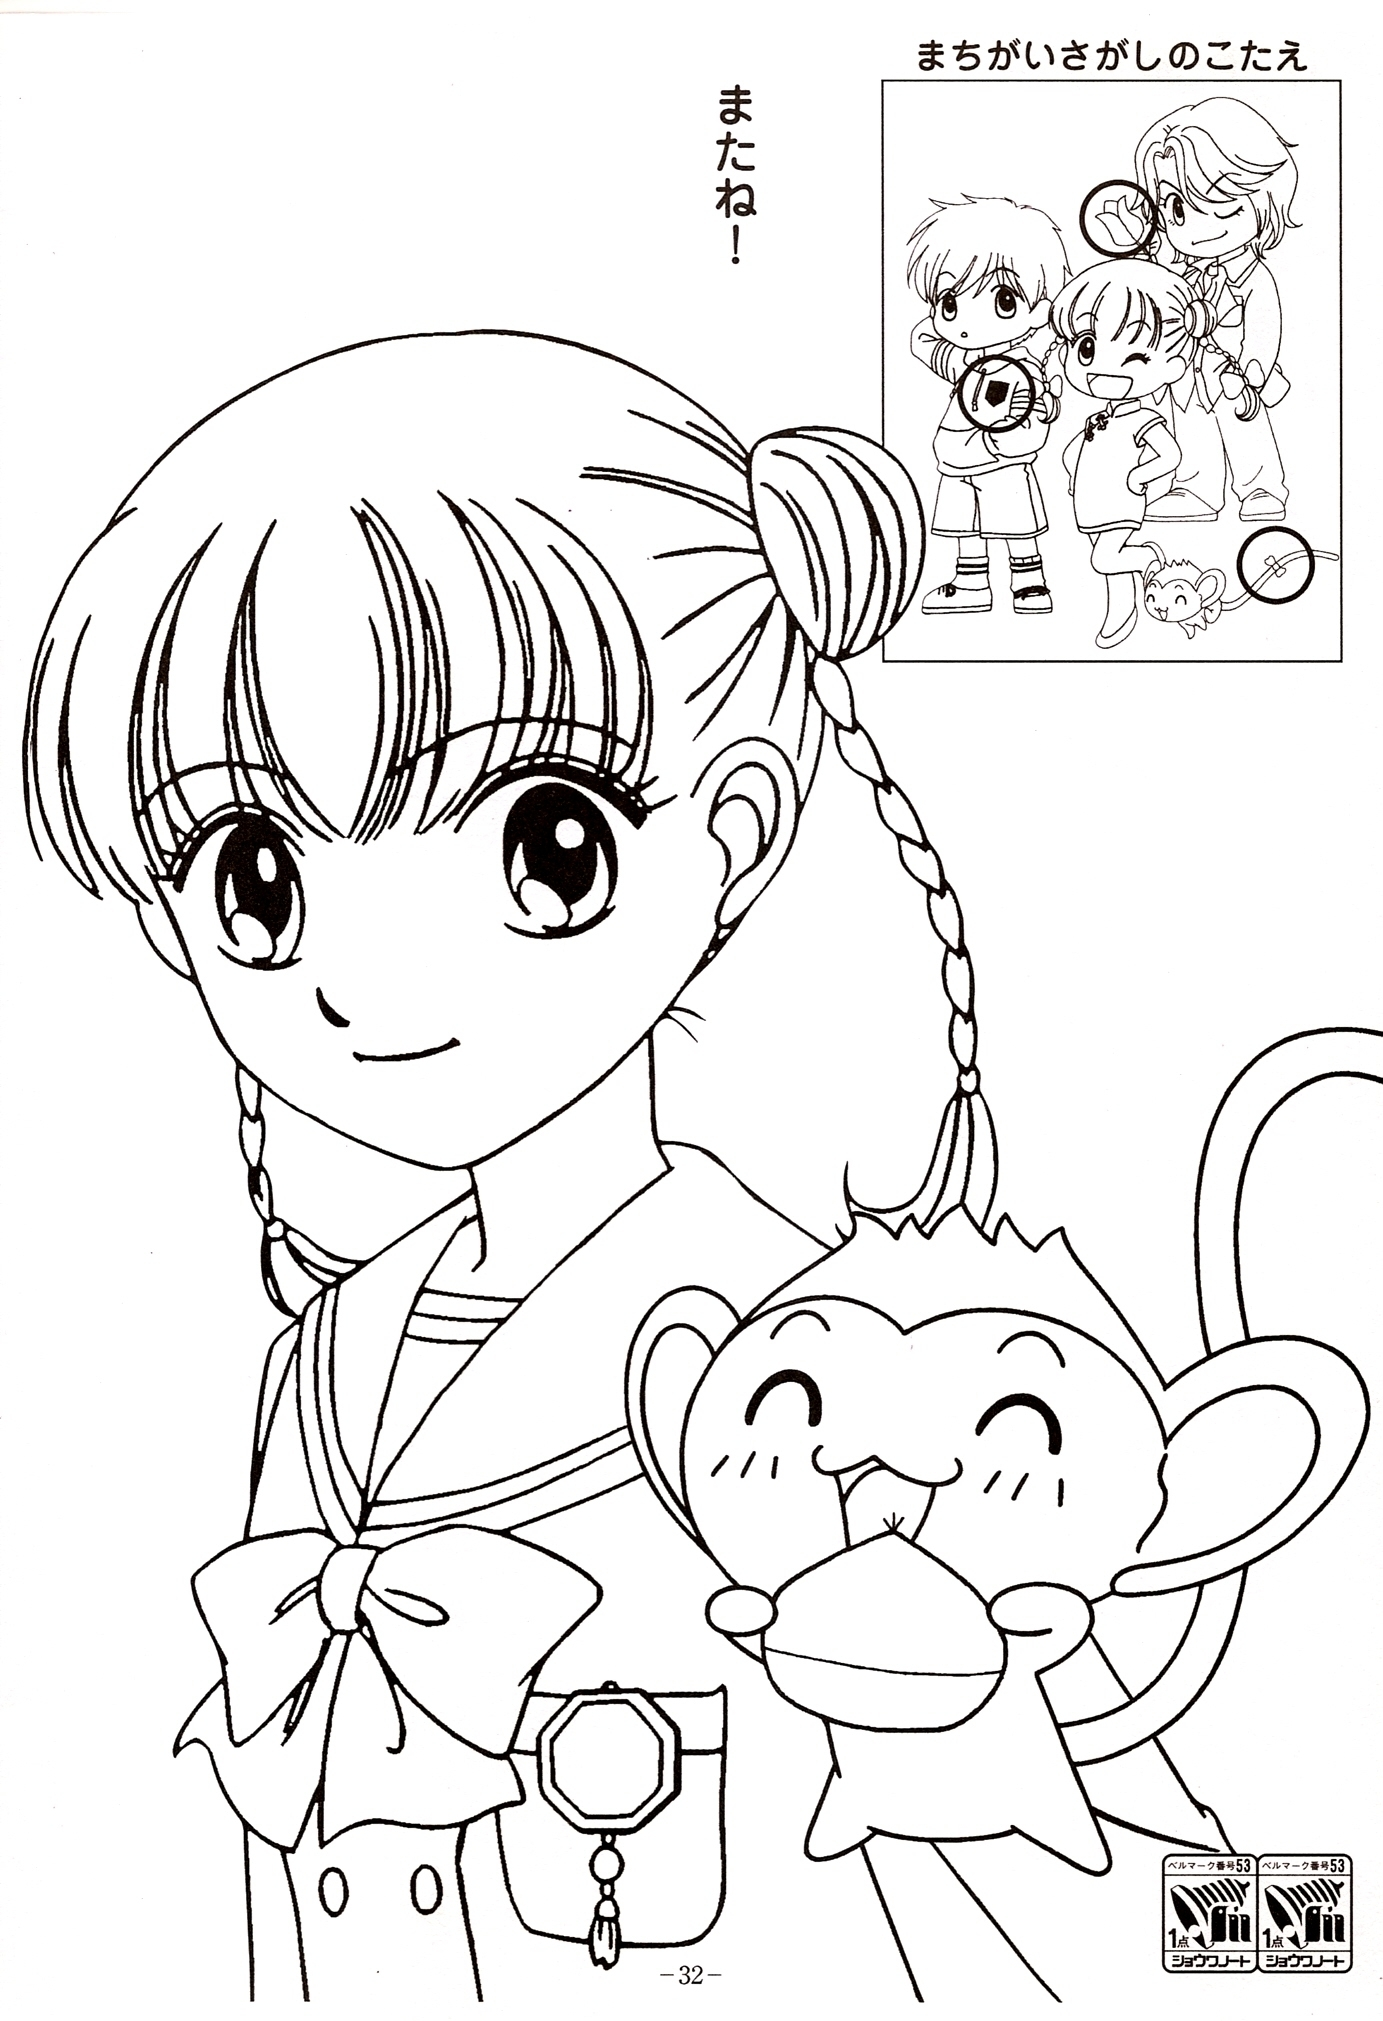 Dr. Mario Comic Coloring Pages Coloring Pages